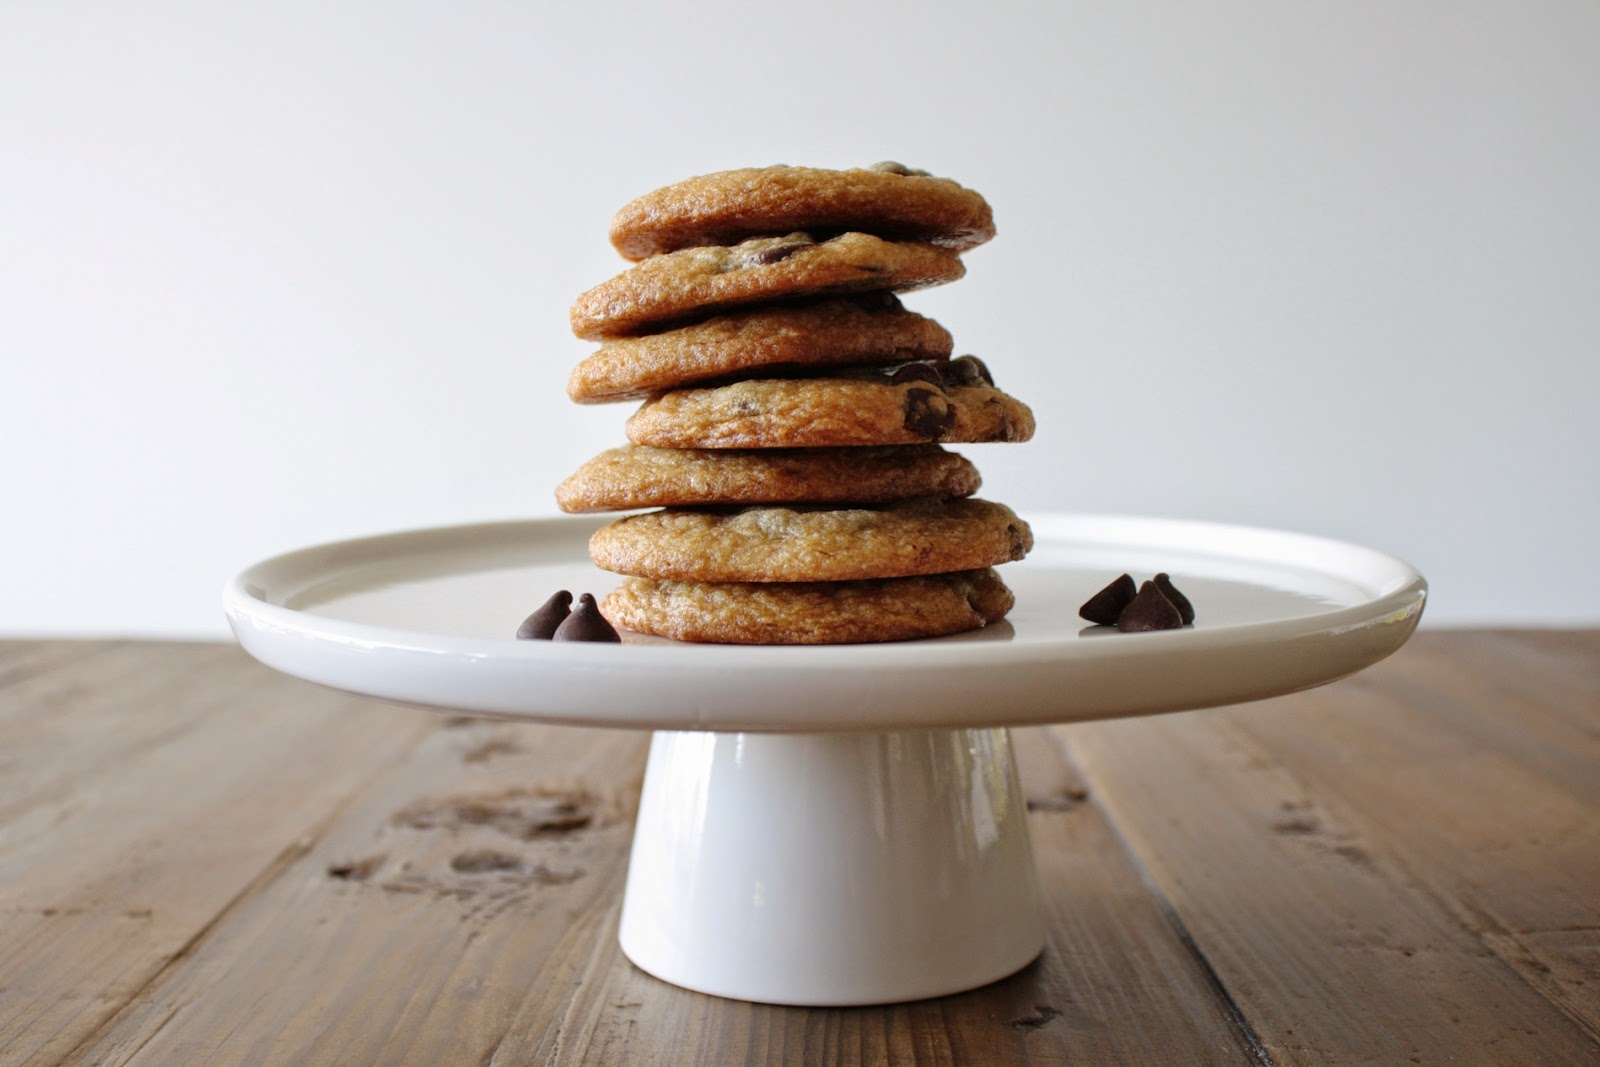 Cookies stacked on a cake stand.